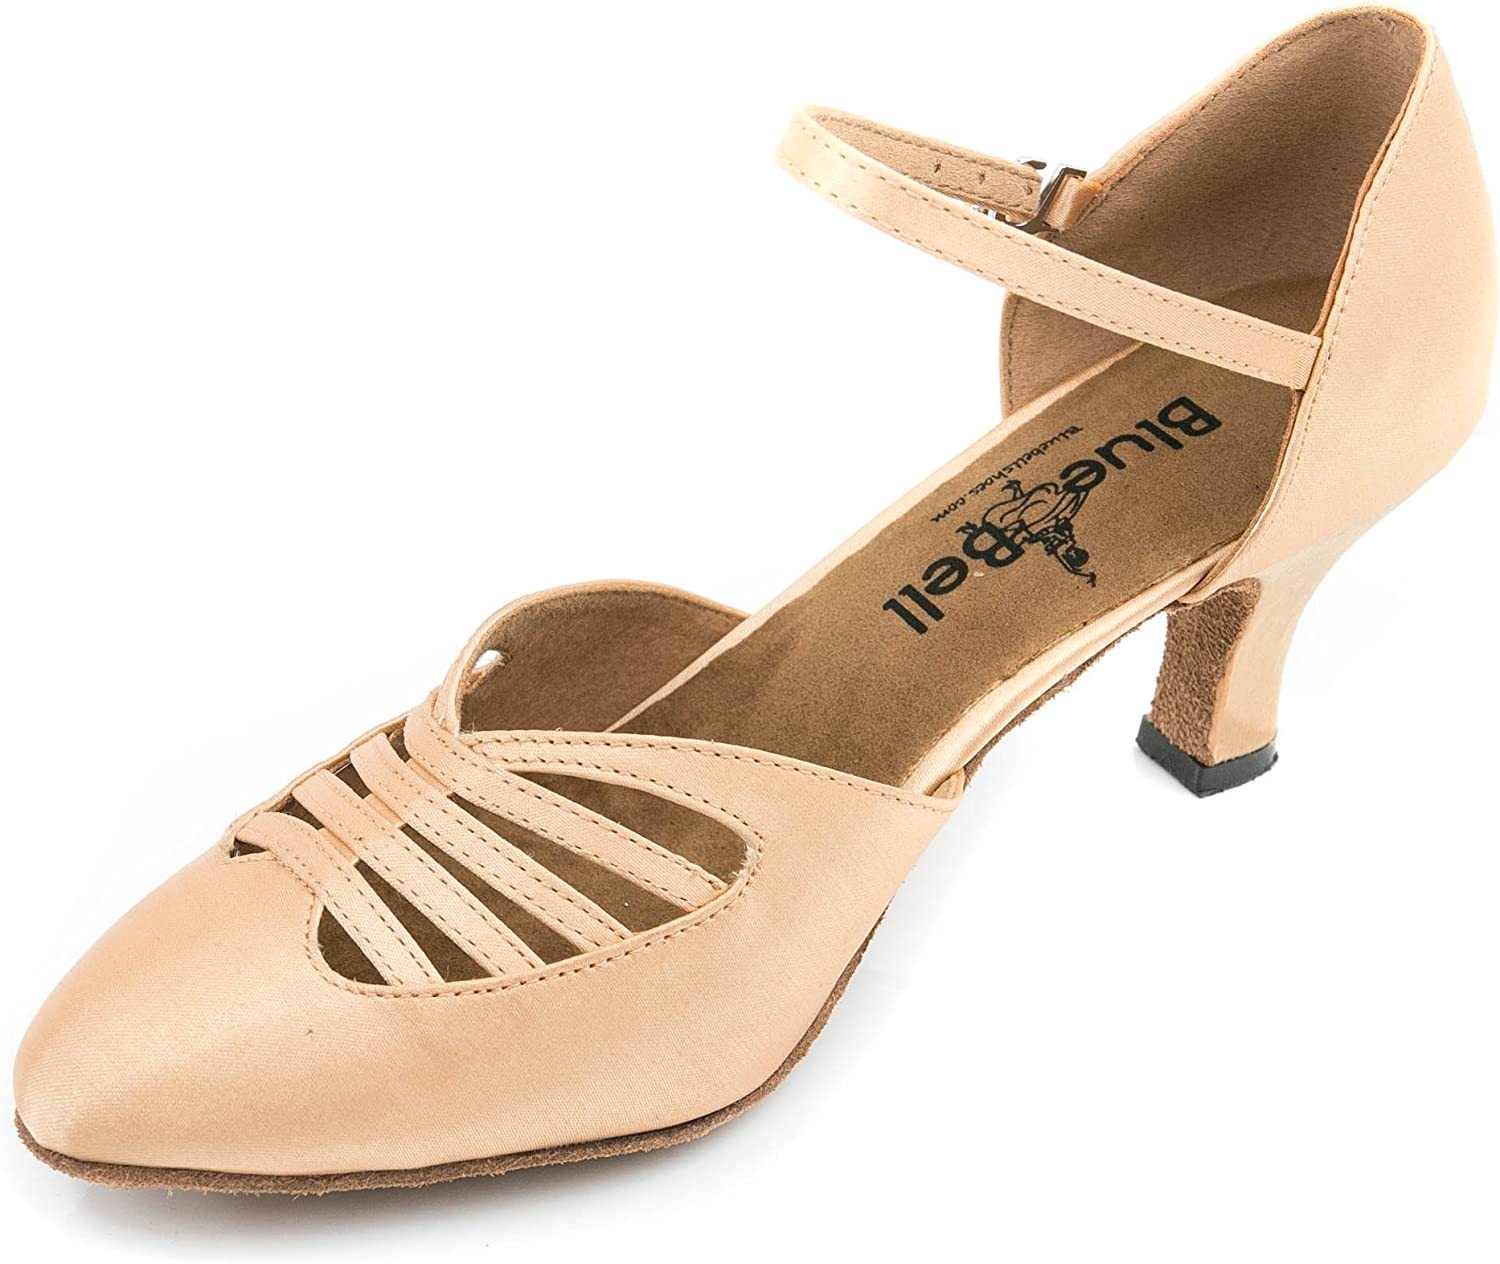 BlueBell Shoes Handmade Women's Ballroom Salsa Wedding Competition Dance Shoes Alice 2.5